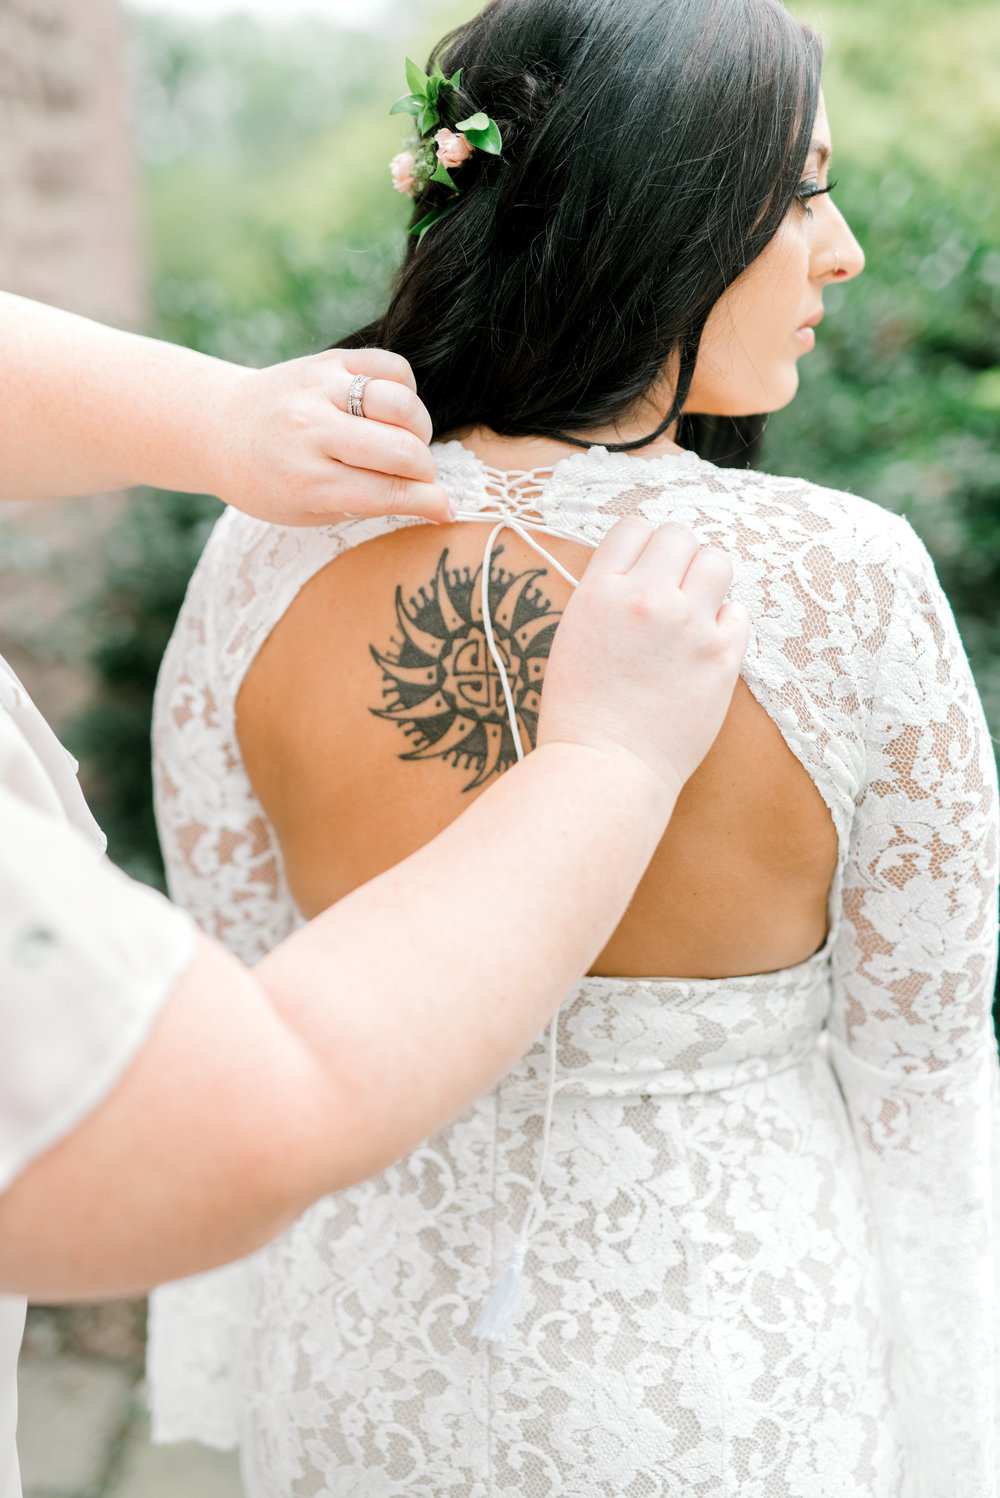 The finishing touches are added to Alicia's dramatic lace BHLDN wedding gown just moments before entering her bright boho chic Tyler Gardens wedding in Bucks County